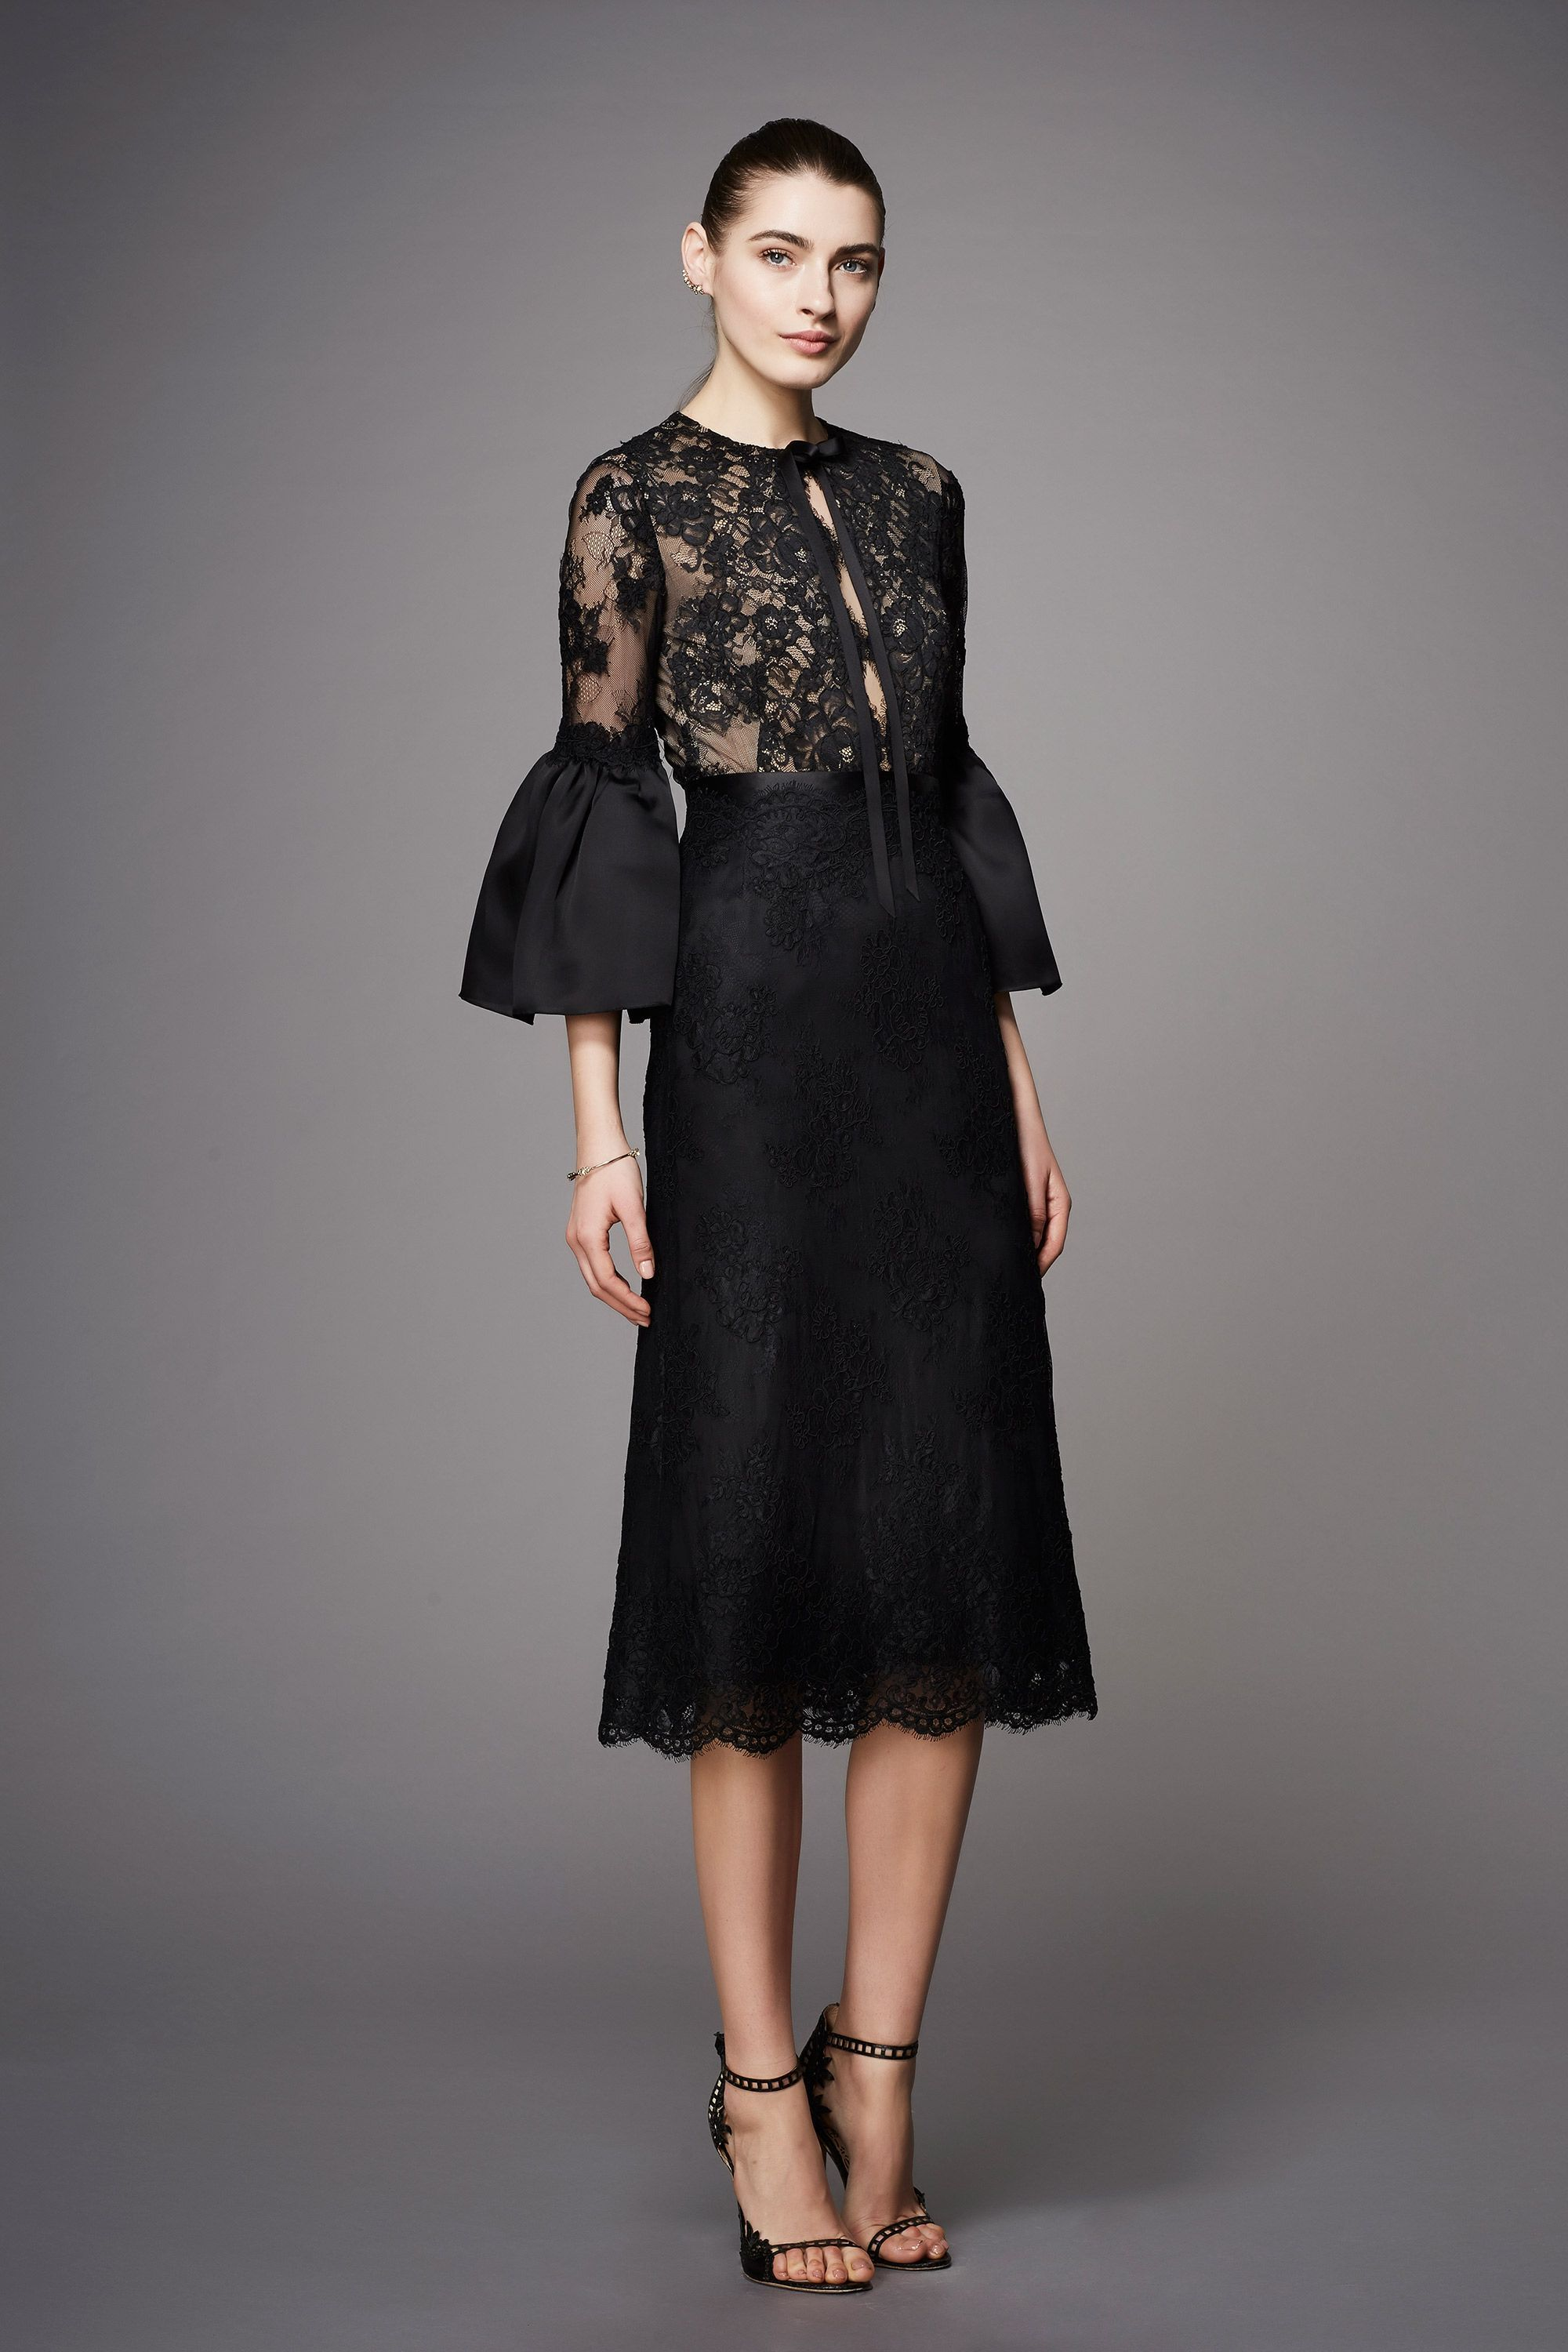 Marchesa Autumn/Winter 2017 Pre-Fall Collection